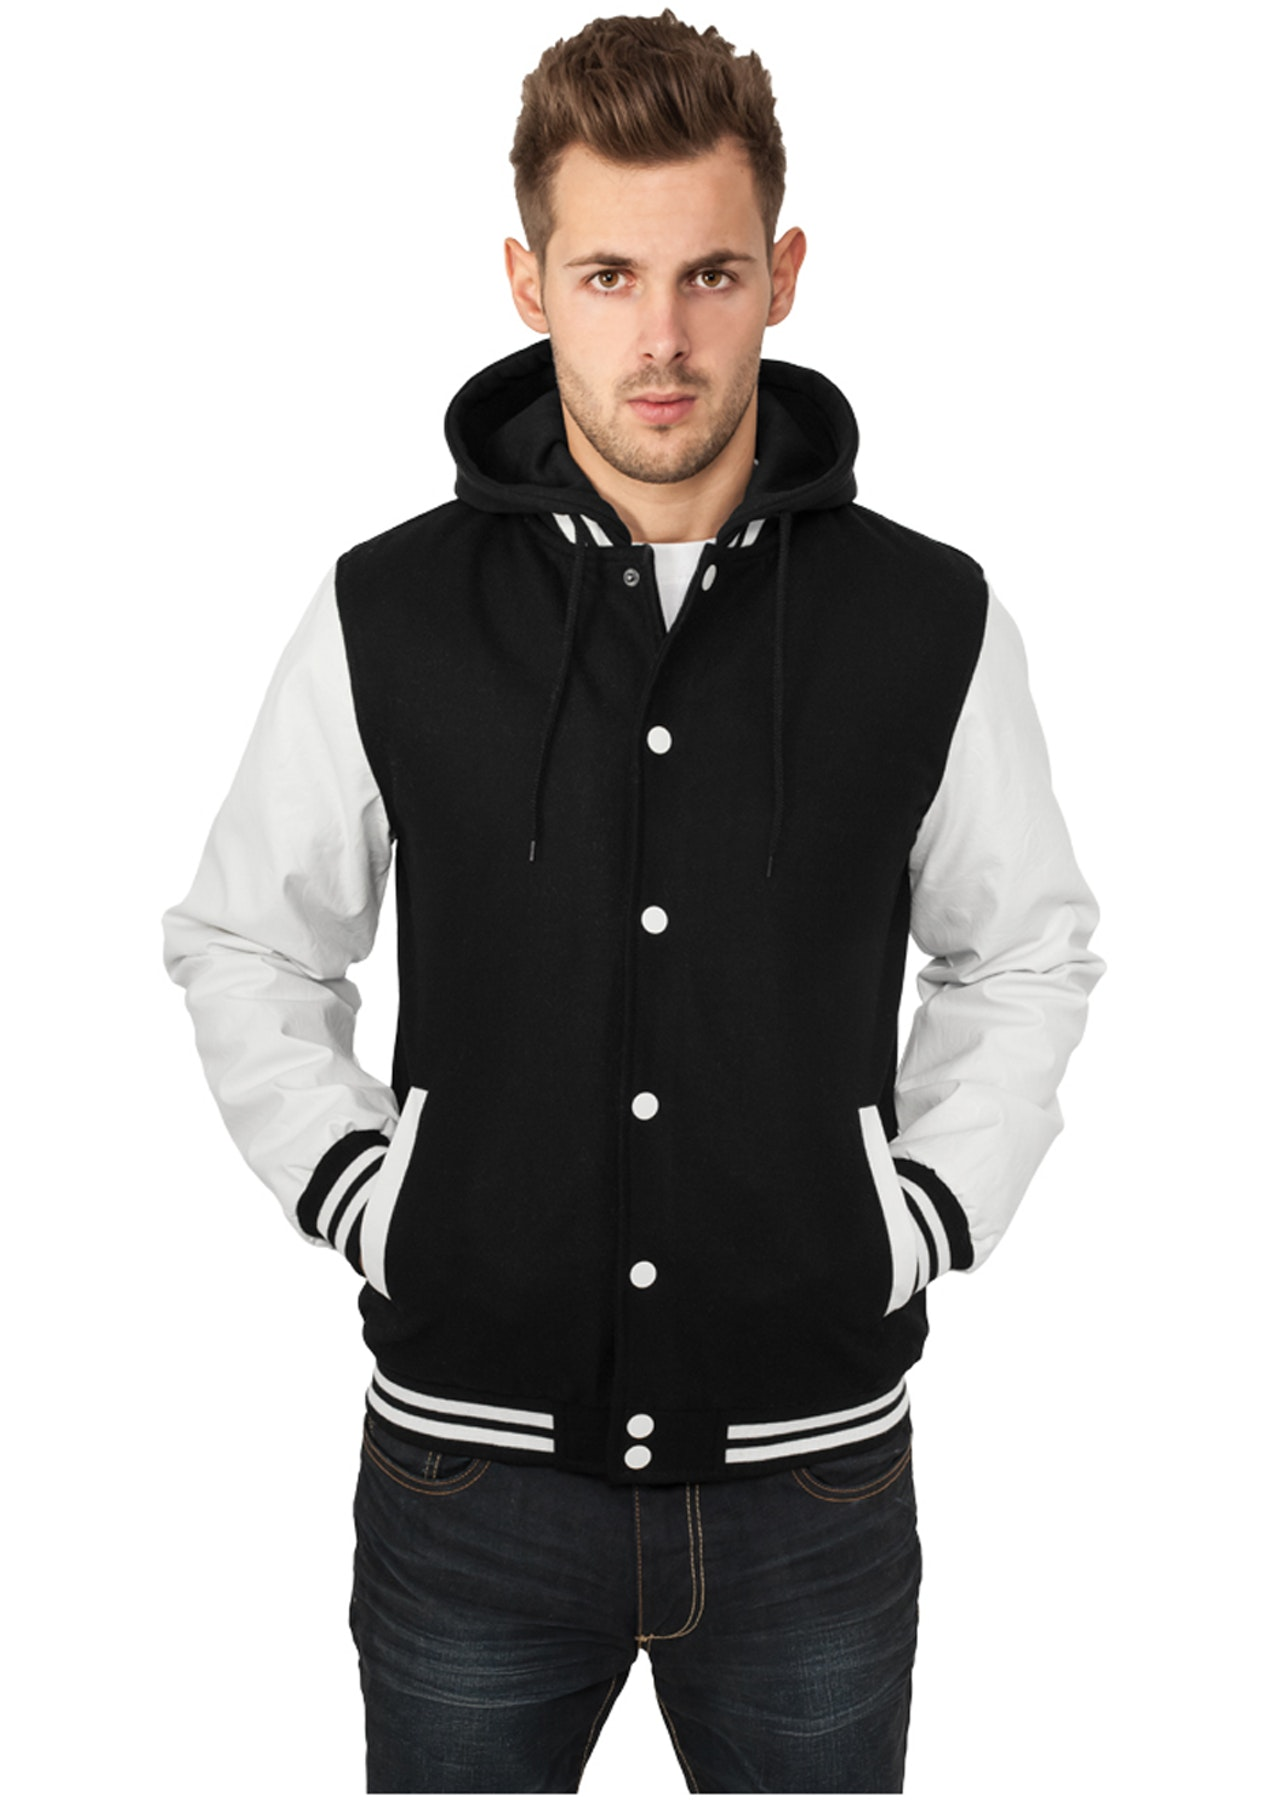 74c454c7 Urban Classics - Hooded Oldschool College Jacket - black/white ...